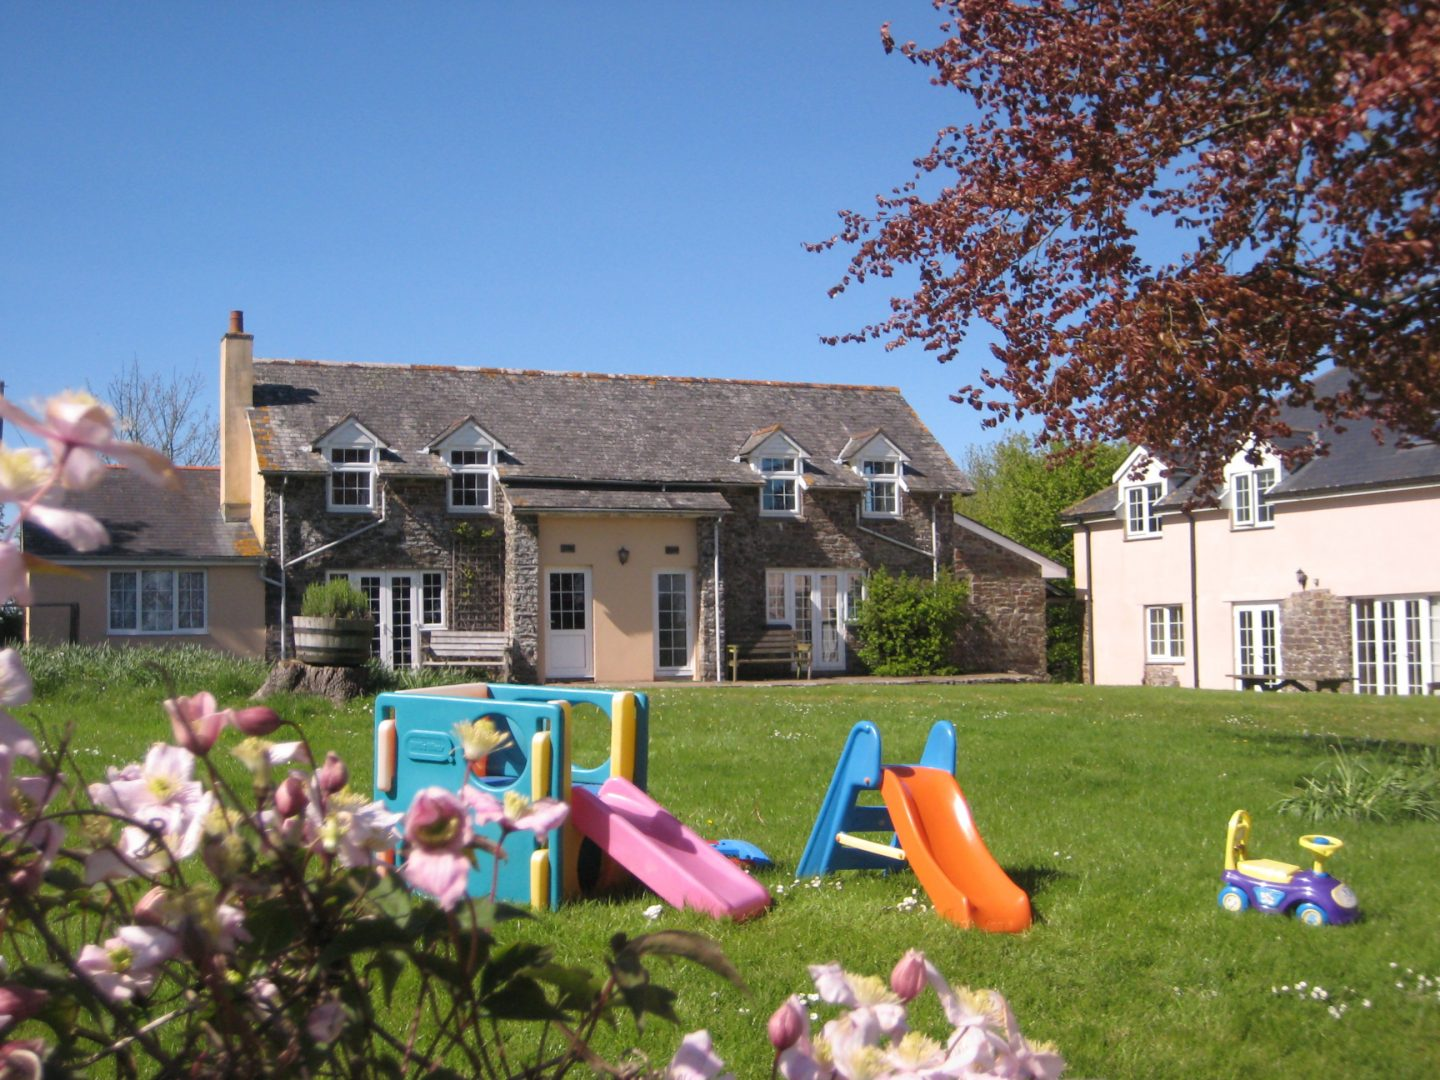 Review of Torridge House Farm Cottages in Devon